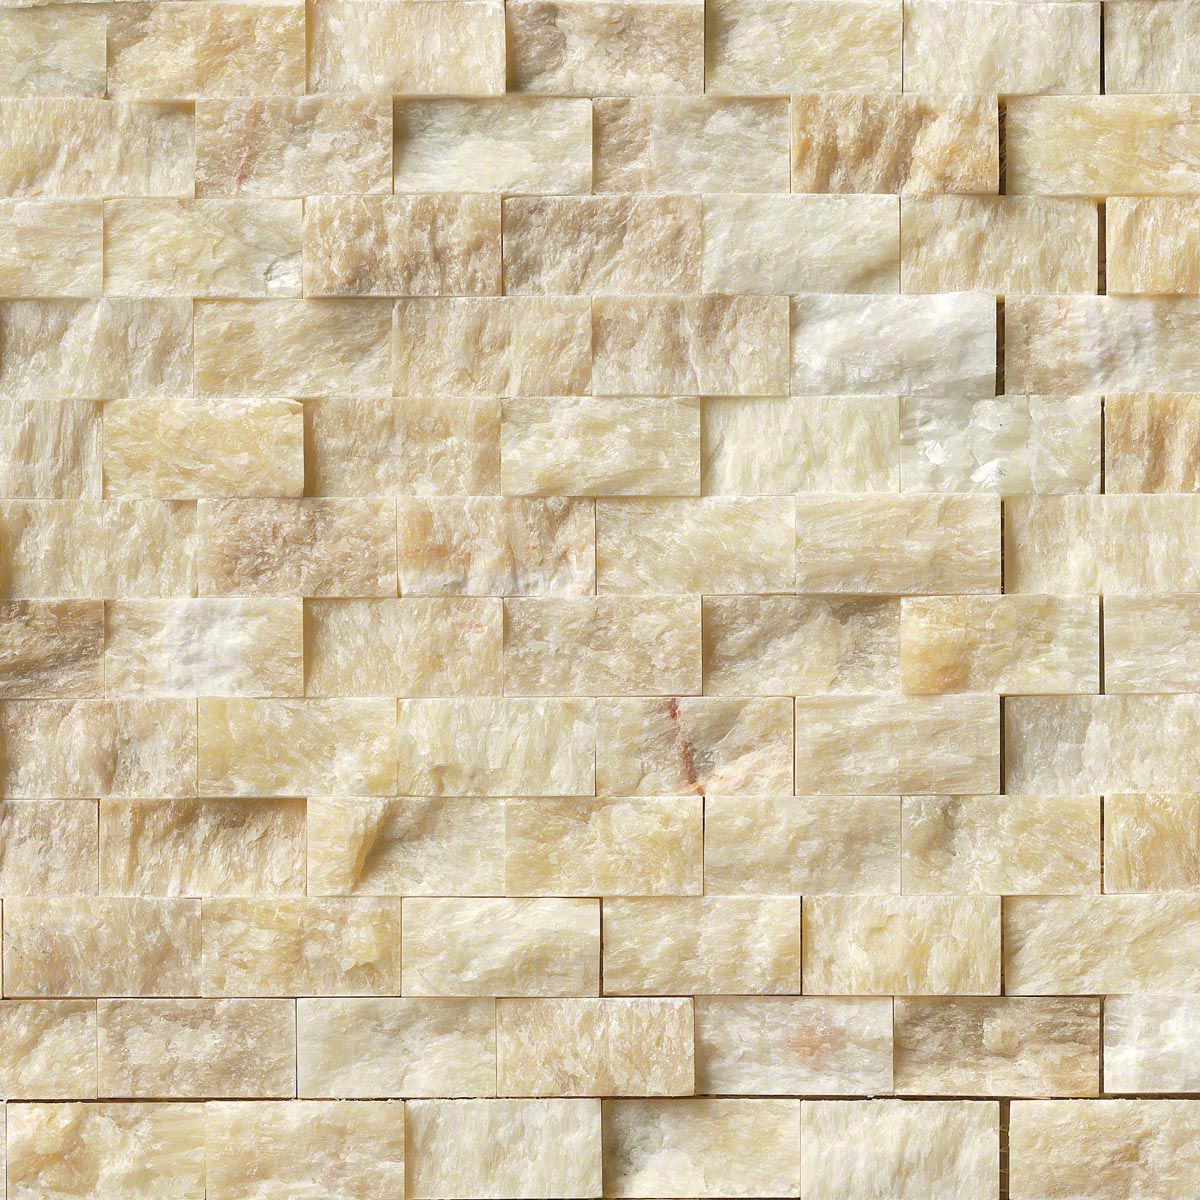 Soleil onyx 1x2 splitface in 12x12 mesh stacked stone tile stacked soleil onyx 1x2 splitface in 12x12 mesh stacked stone tile stacked stone backsplash dailygadgetfo Choice Image